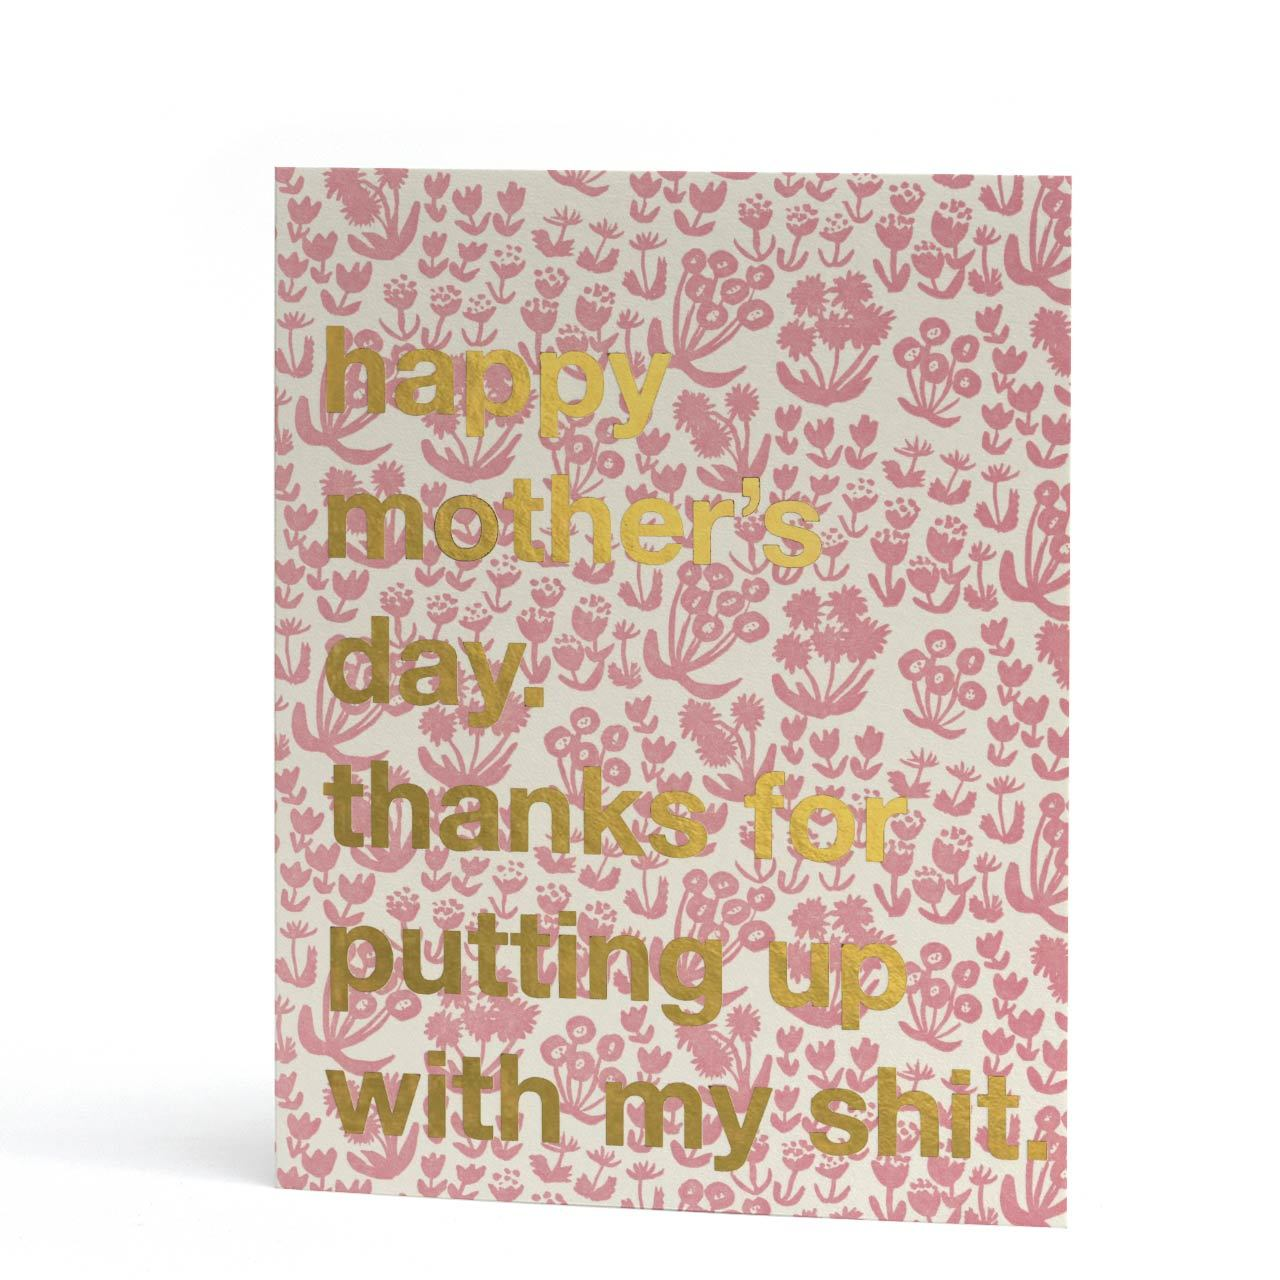 Putting Up... Mother's Day Letterpress Gold Foil Greeting Card